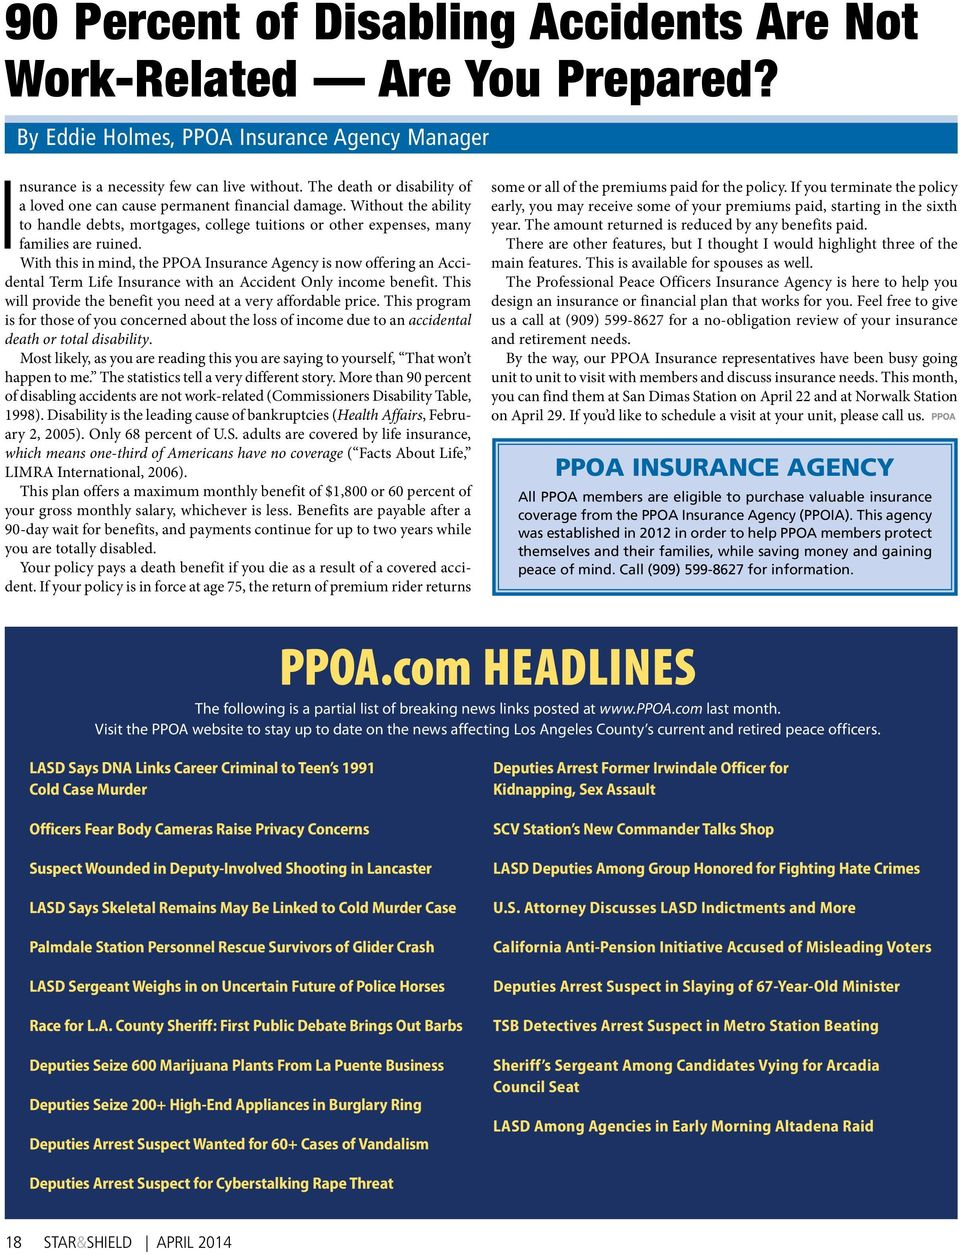 With this in mind, the PPOA Insurance Agency is now offering an Accidental Term Life Insurance with an Accident Only income benefit. This will provide the benefit you need at a very affordable price.